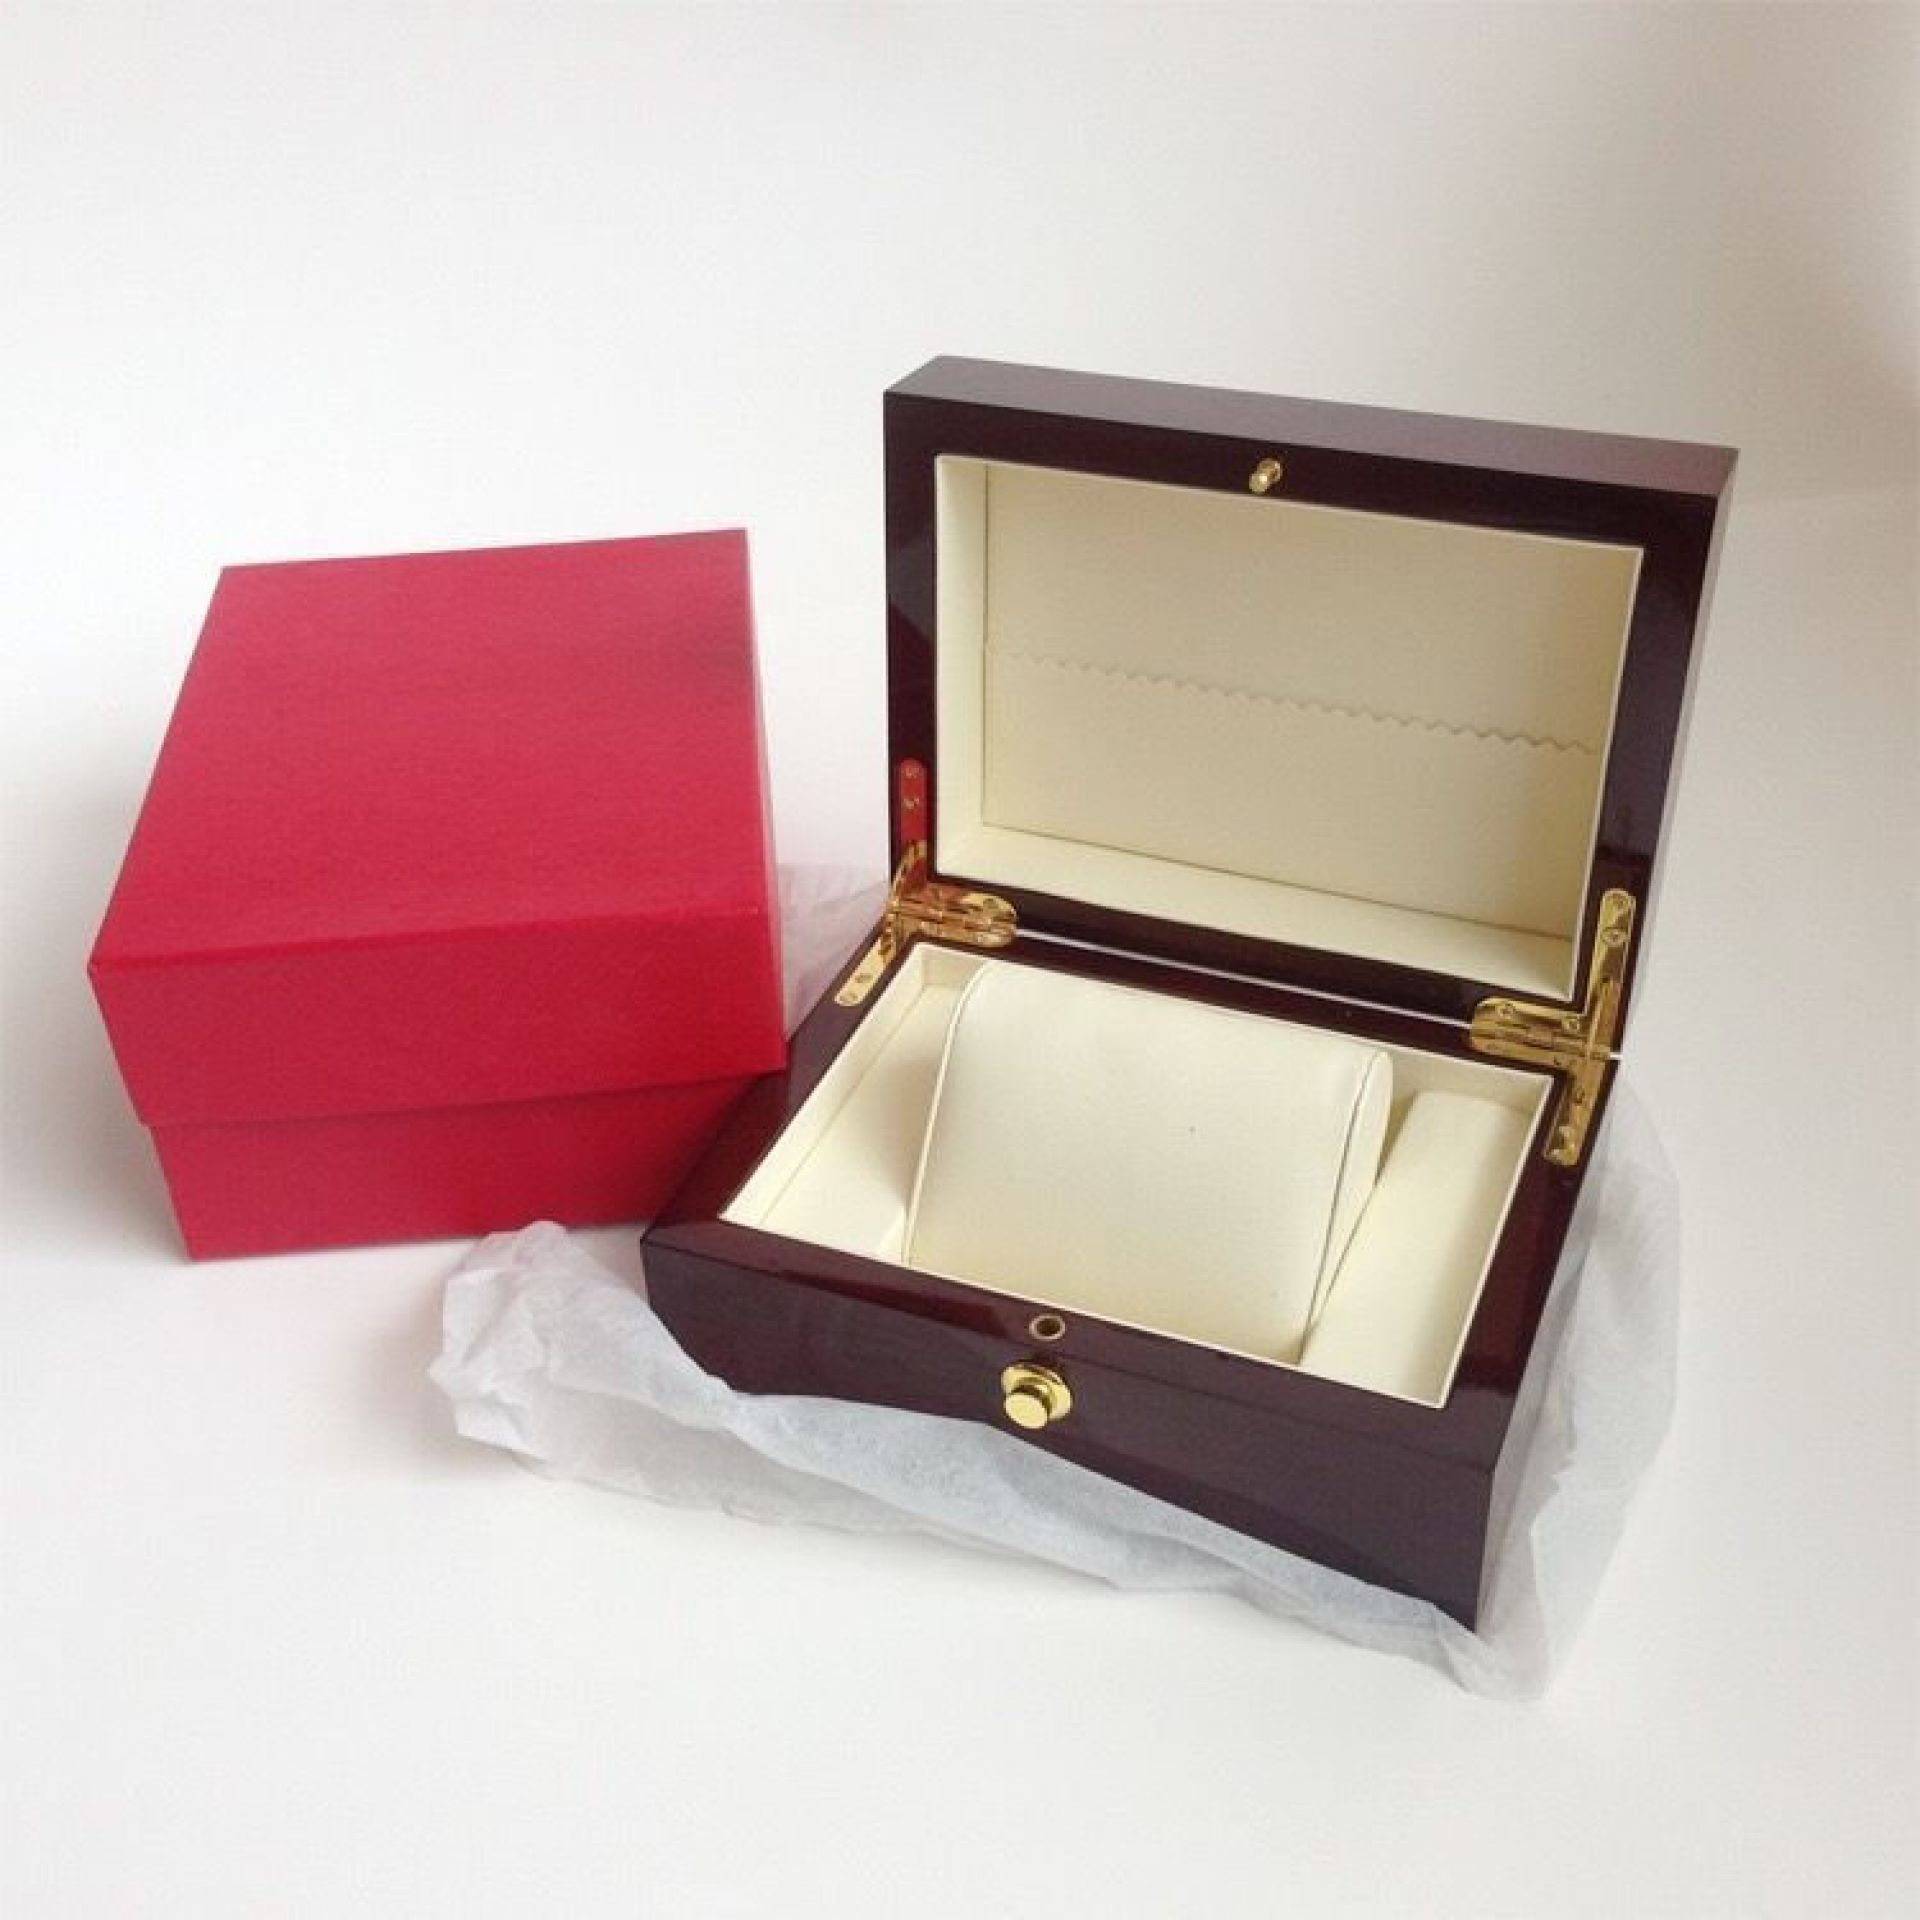 OMEGA VINTAGE CALENDAR DATE 1962 MENS AUTOMATIC SEAMASTER GOLD WATCH + BOX